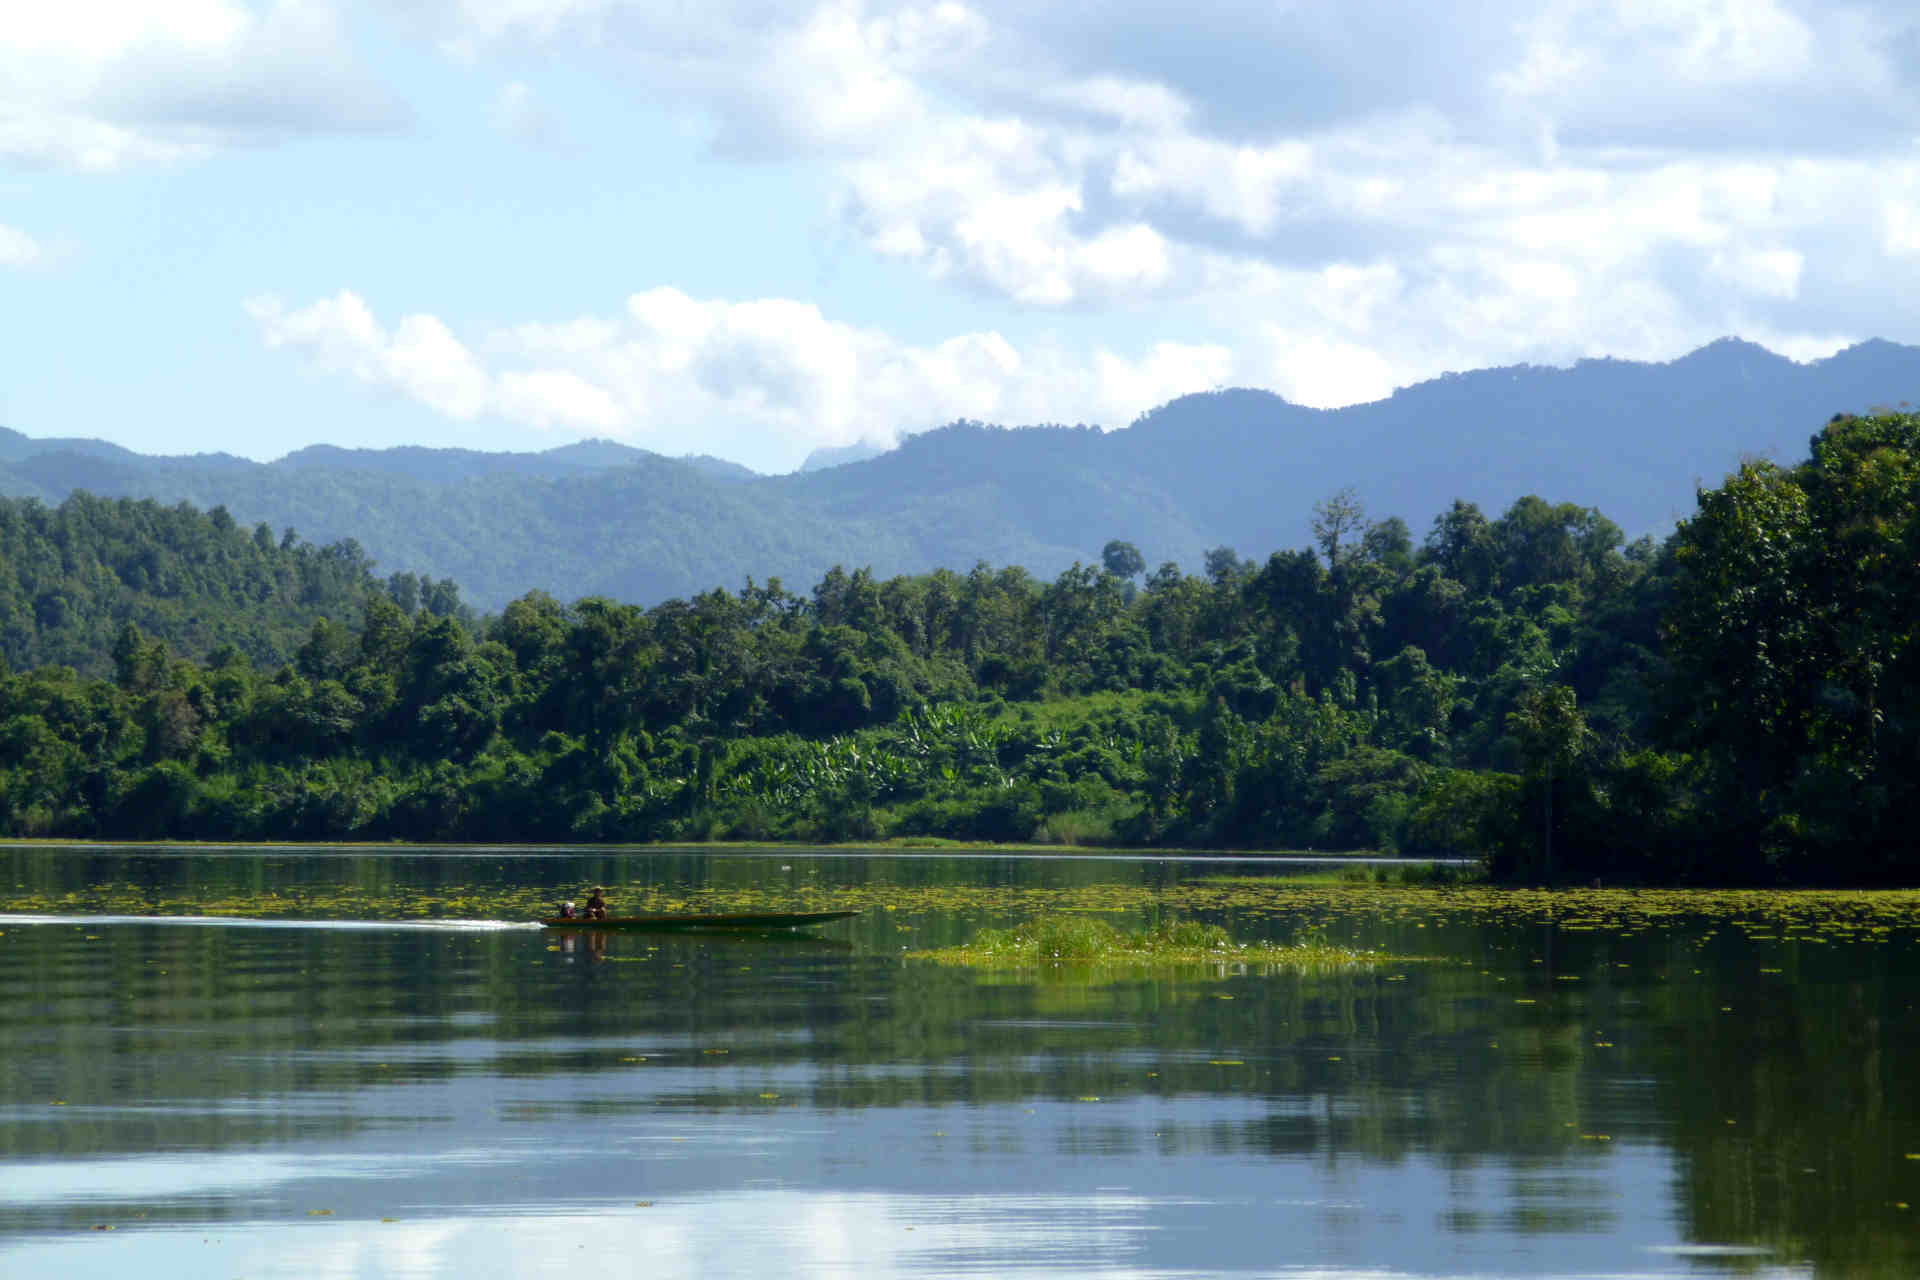 The view over the lake from the elephant rescue centre in Laos